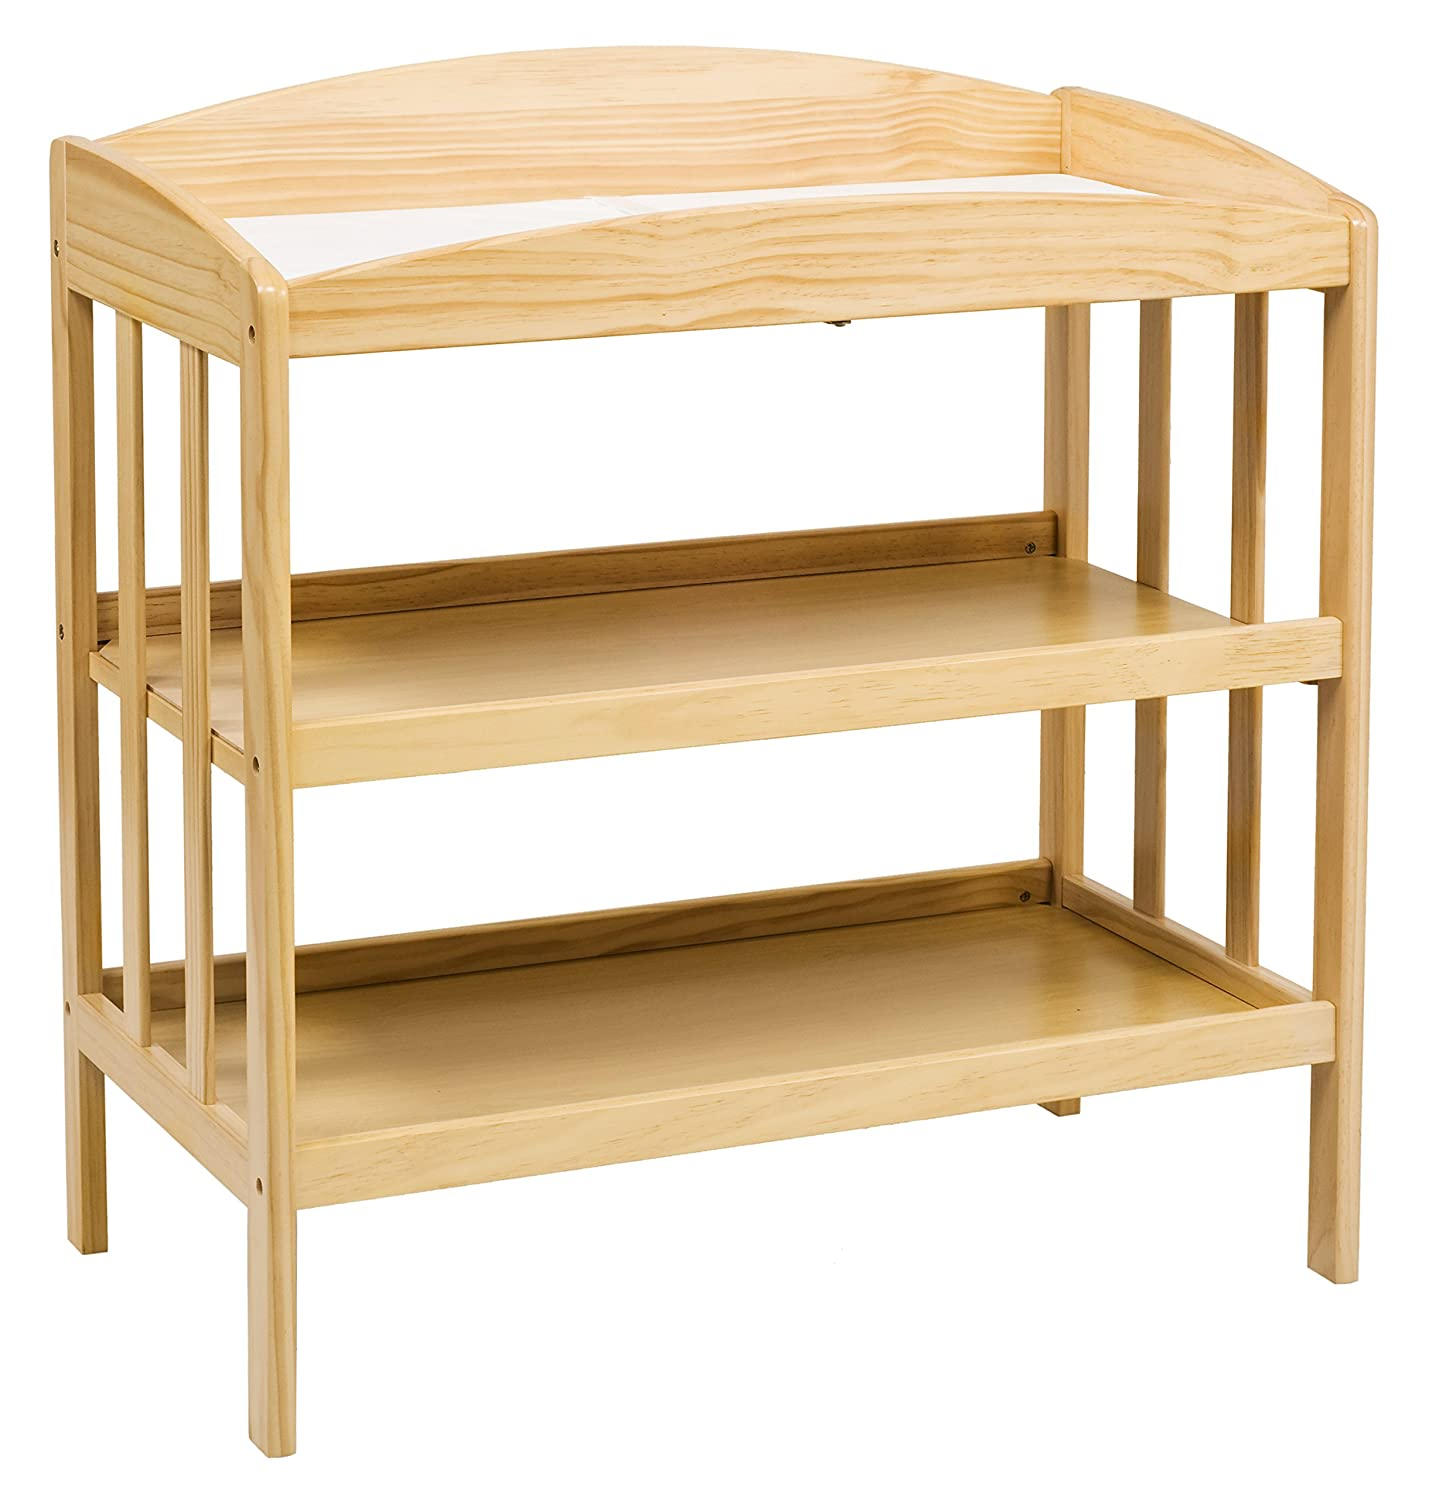 Beautiful Amazon.com : DaVinci Monterey Changing Table   Natural (Discontinued By  Manufacturer) : Natural Wood Changing Table : Baby